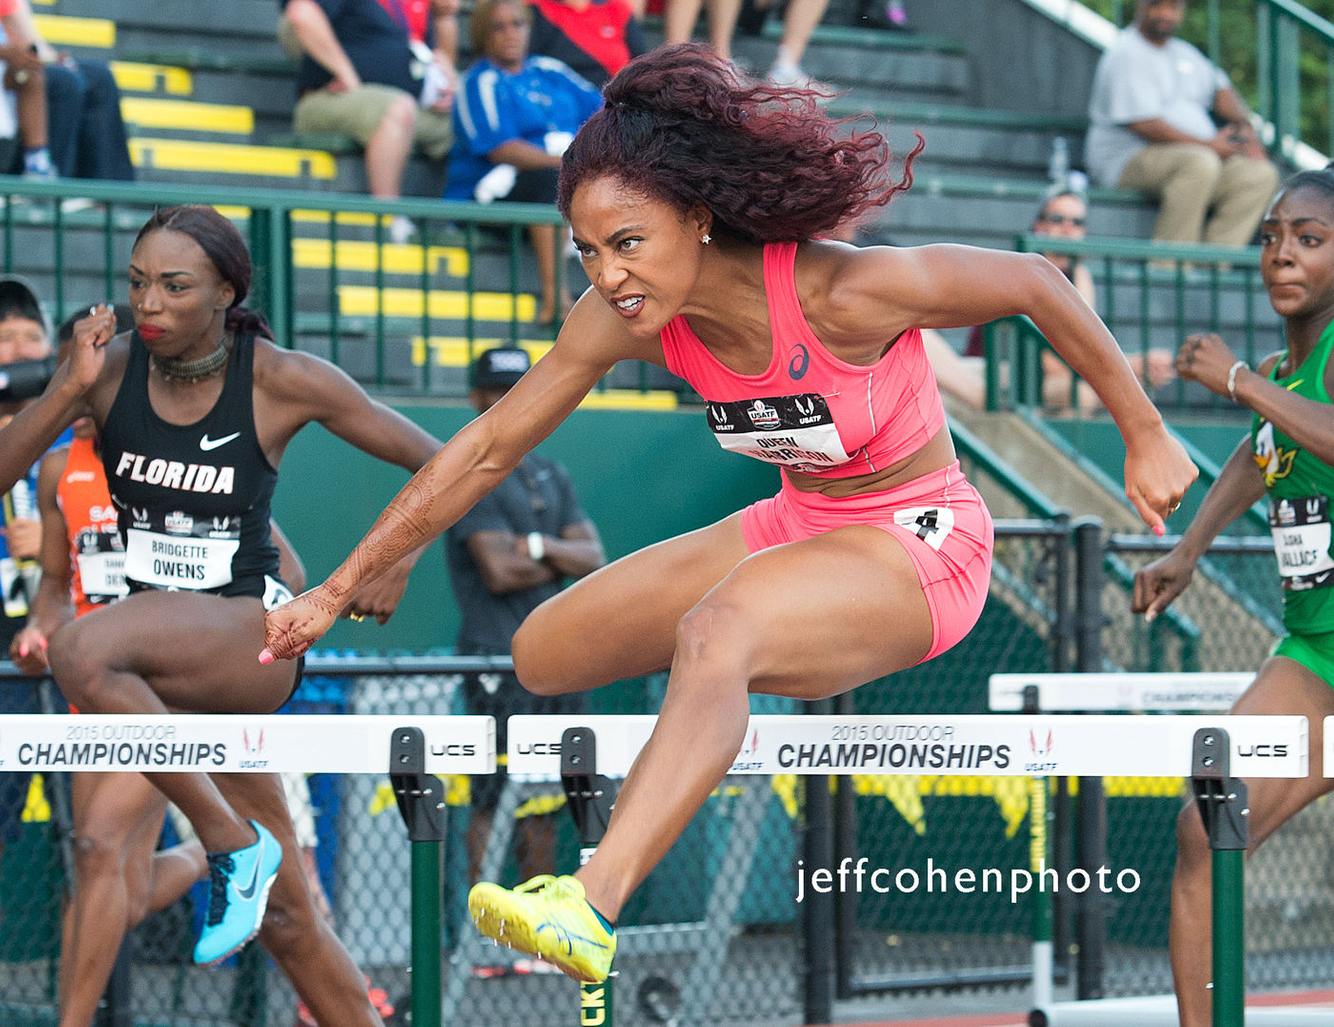 1r2015_usaoutdoors__jeff_cohen0284.jpg